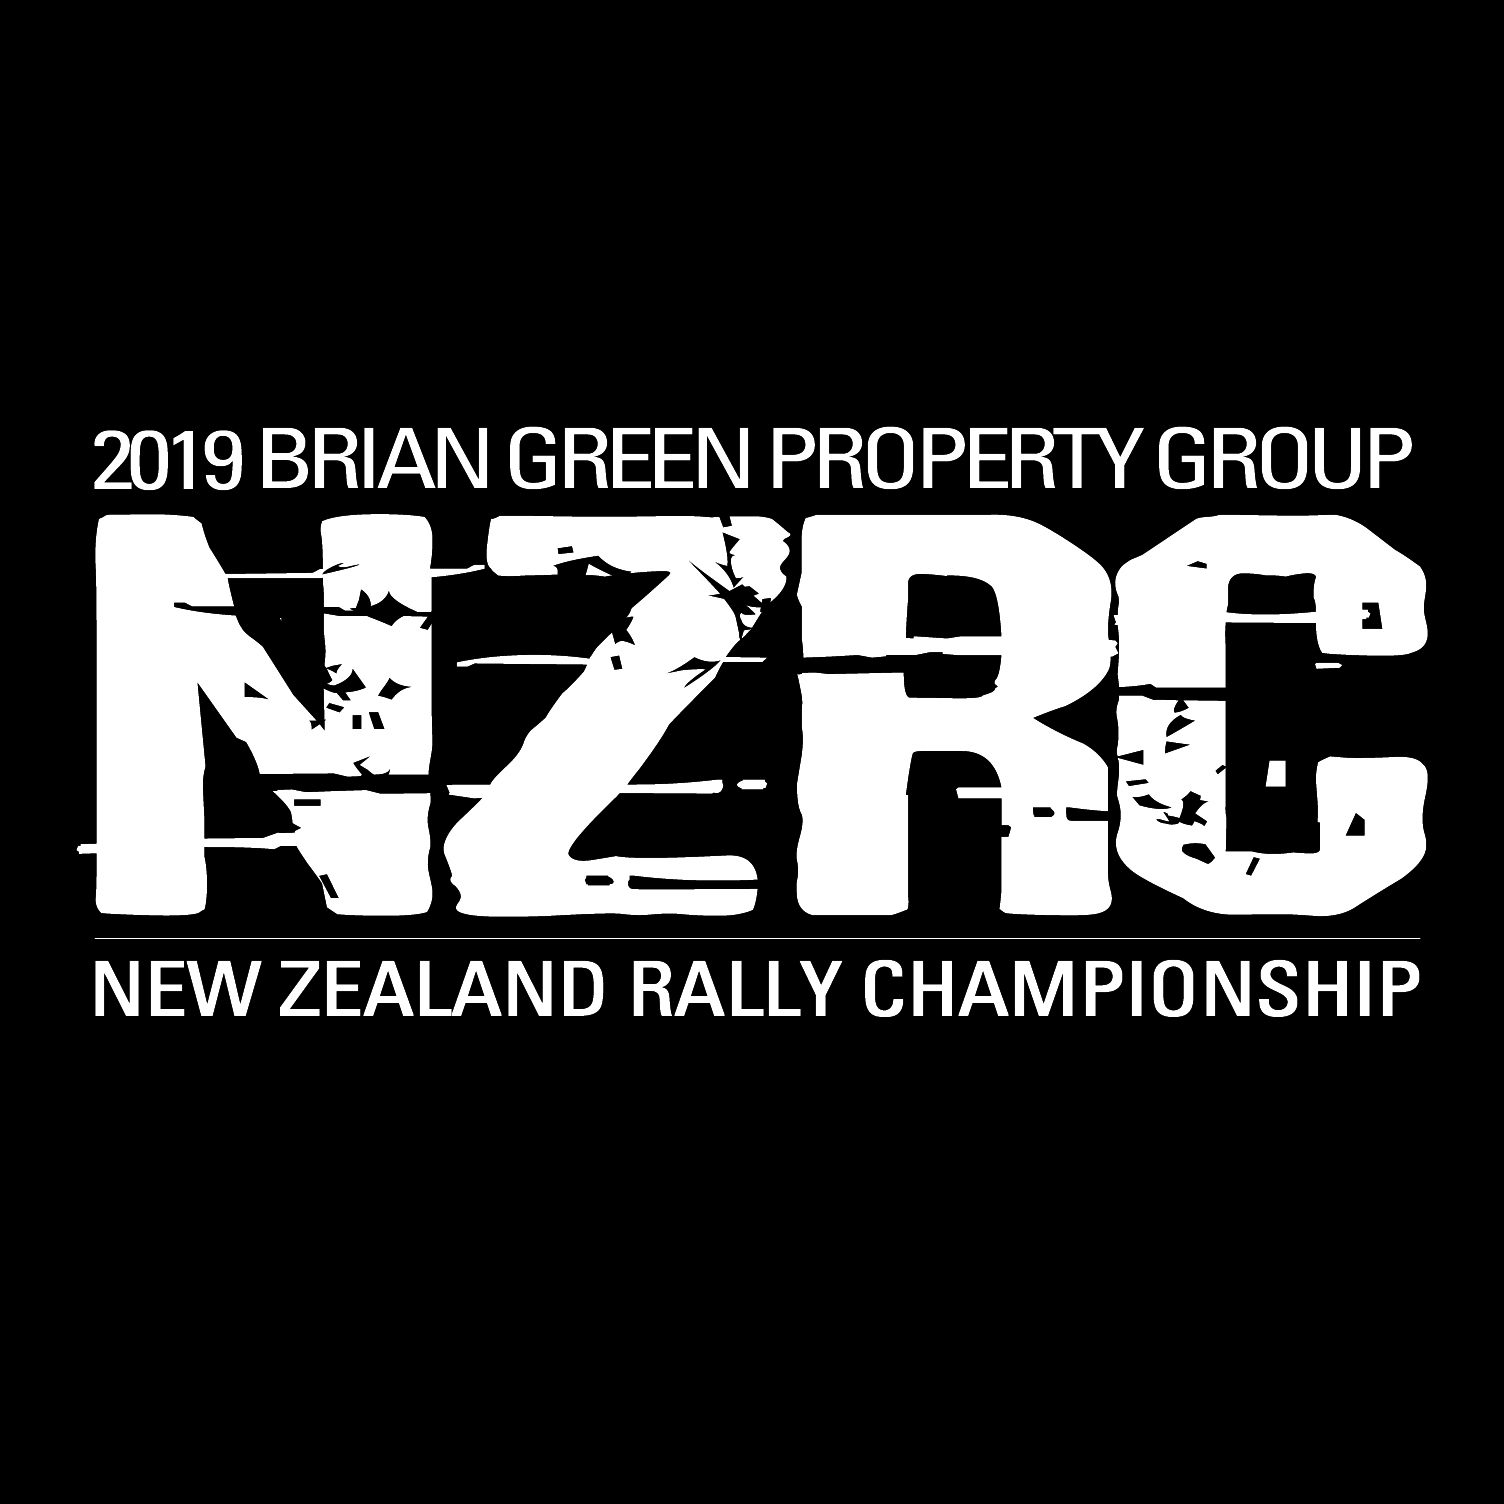 5min with Donald Welsh | :: Brian Green Property Group New Zealand Rally Championship ::